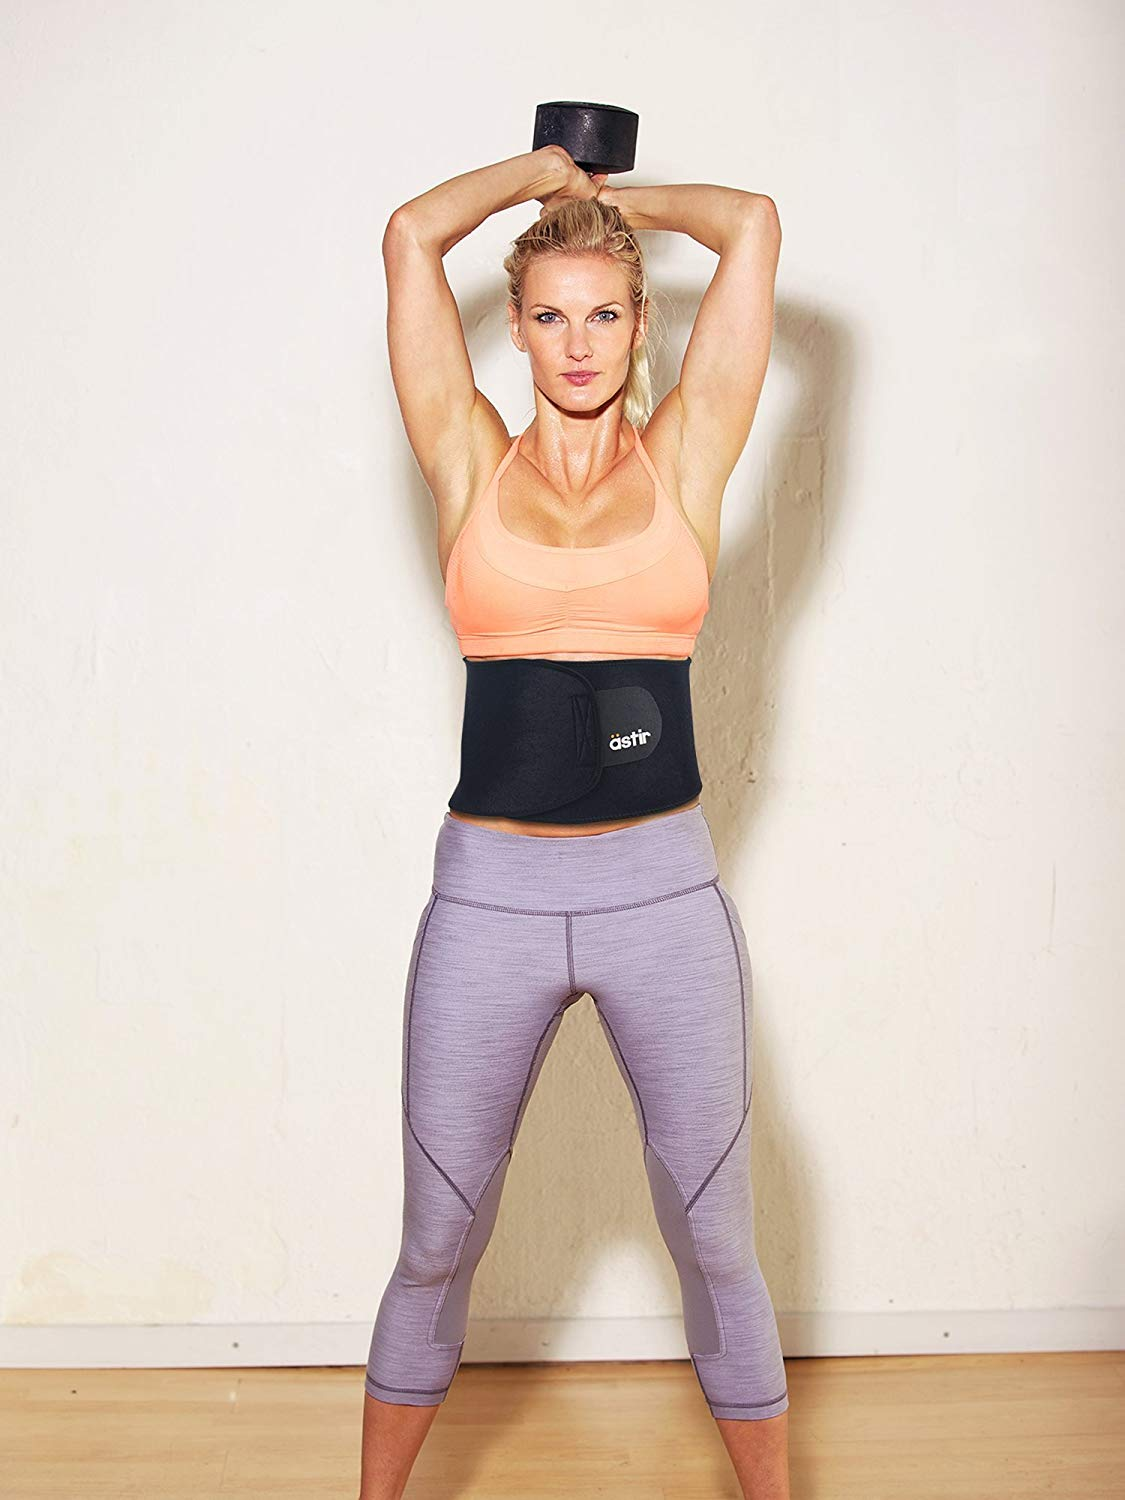 Astir Waist Trimmer Ab Belt - sweat belts